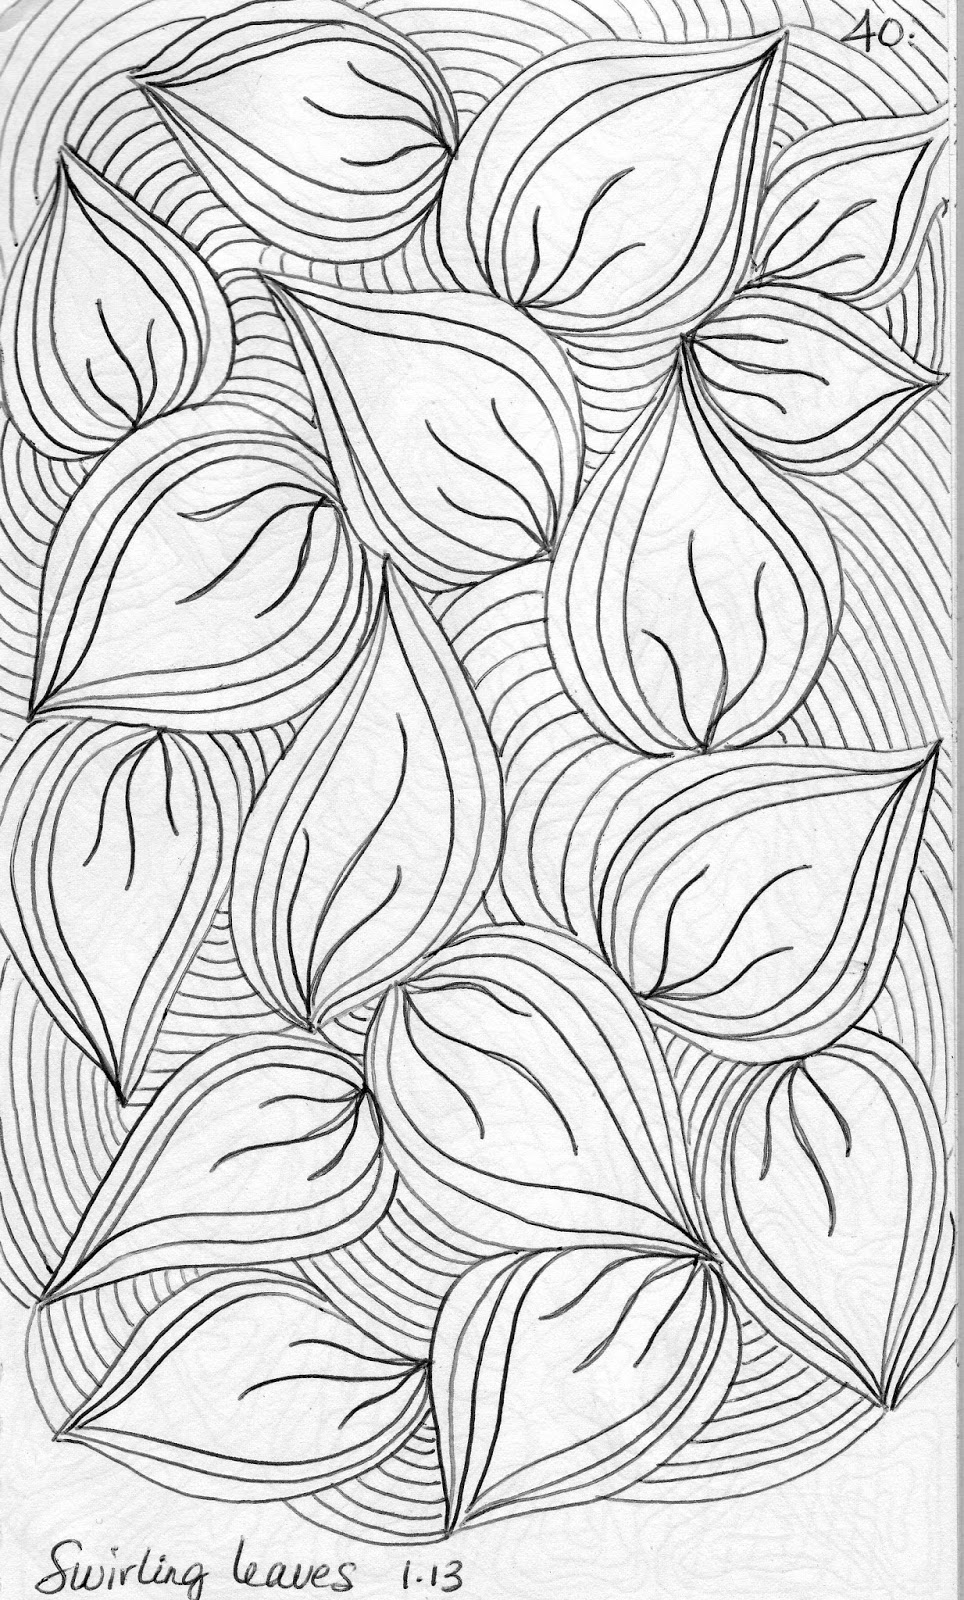 luann kessi quilting sketch book swirling leaves